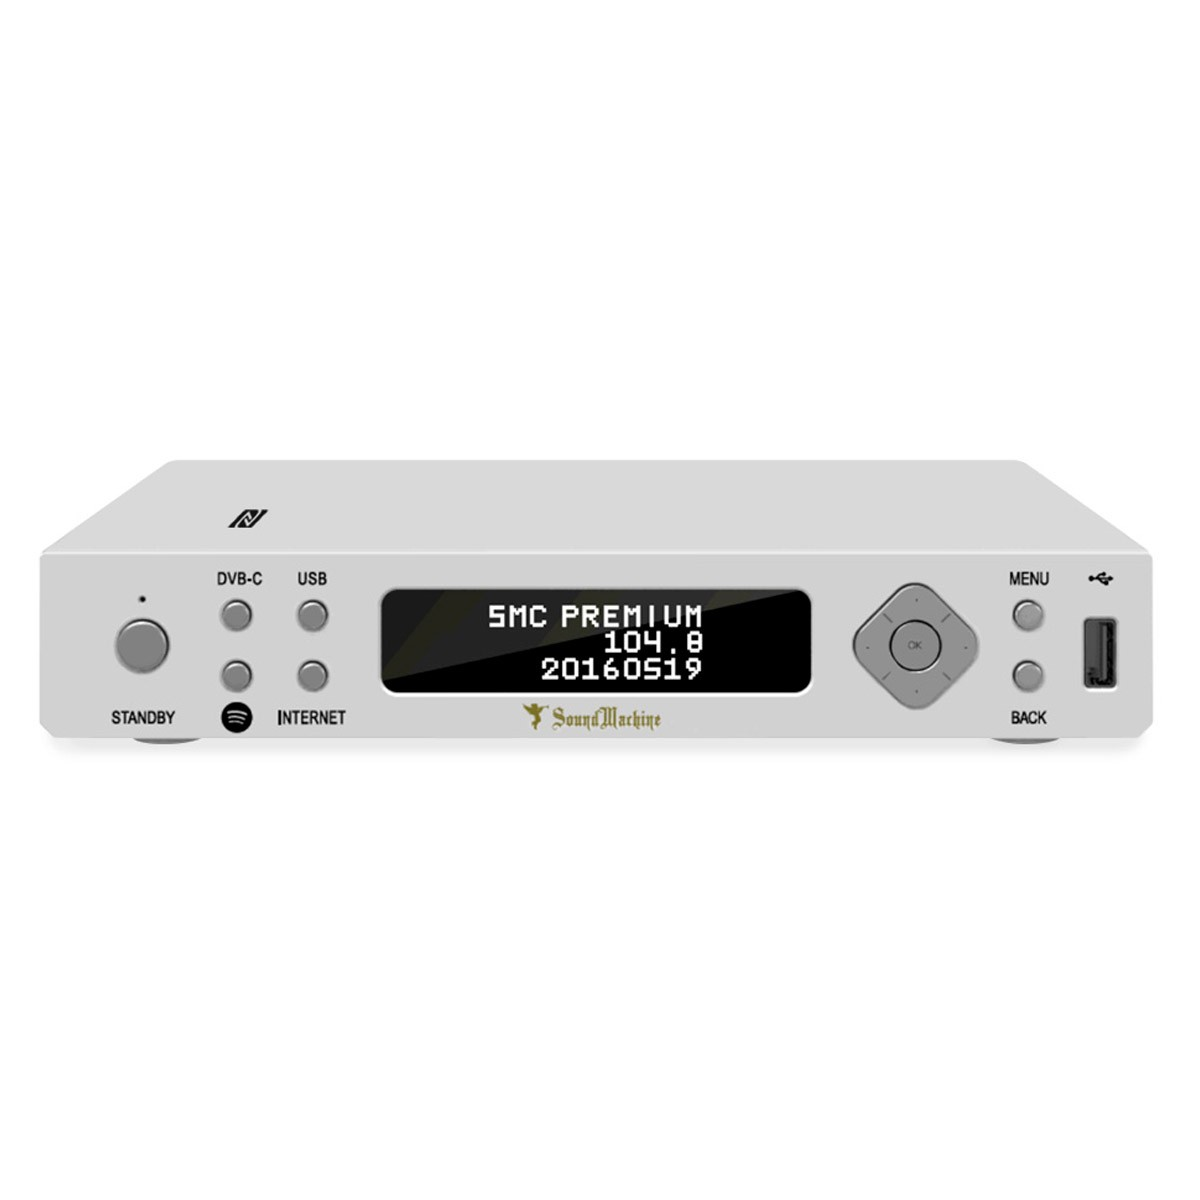 SMC-1030 Audio Streamer WiFi Bluetooth DLNA UPnP DAB+ FM